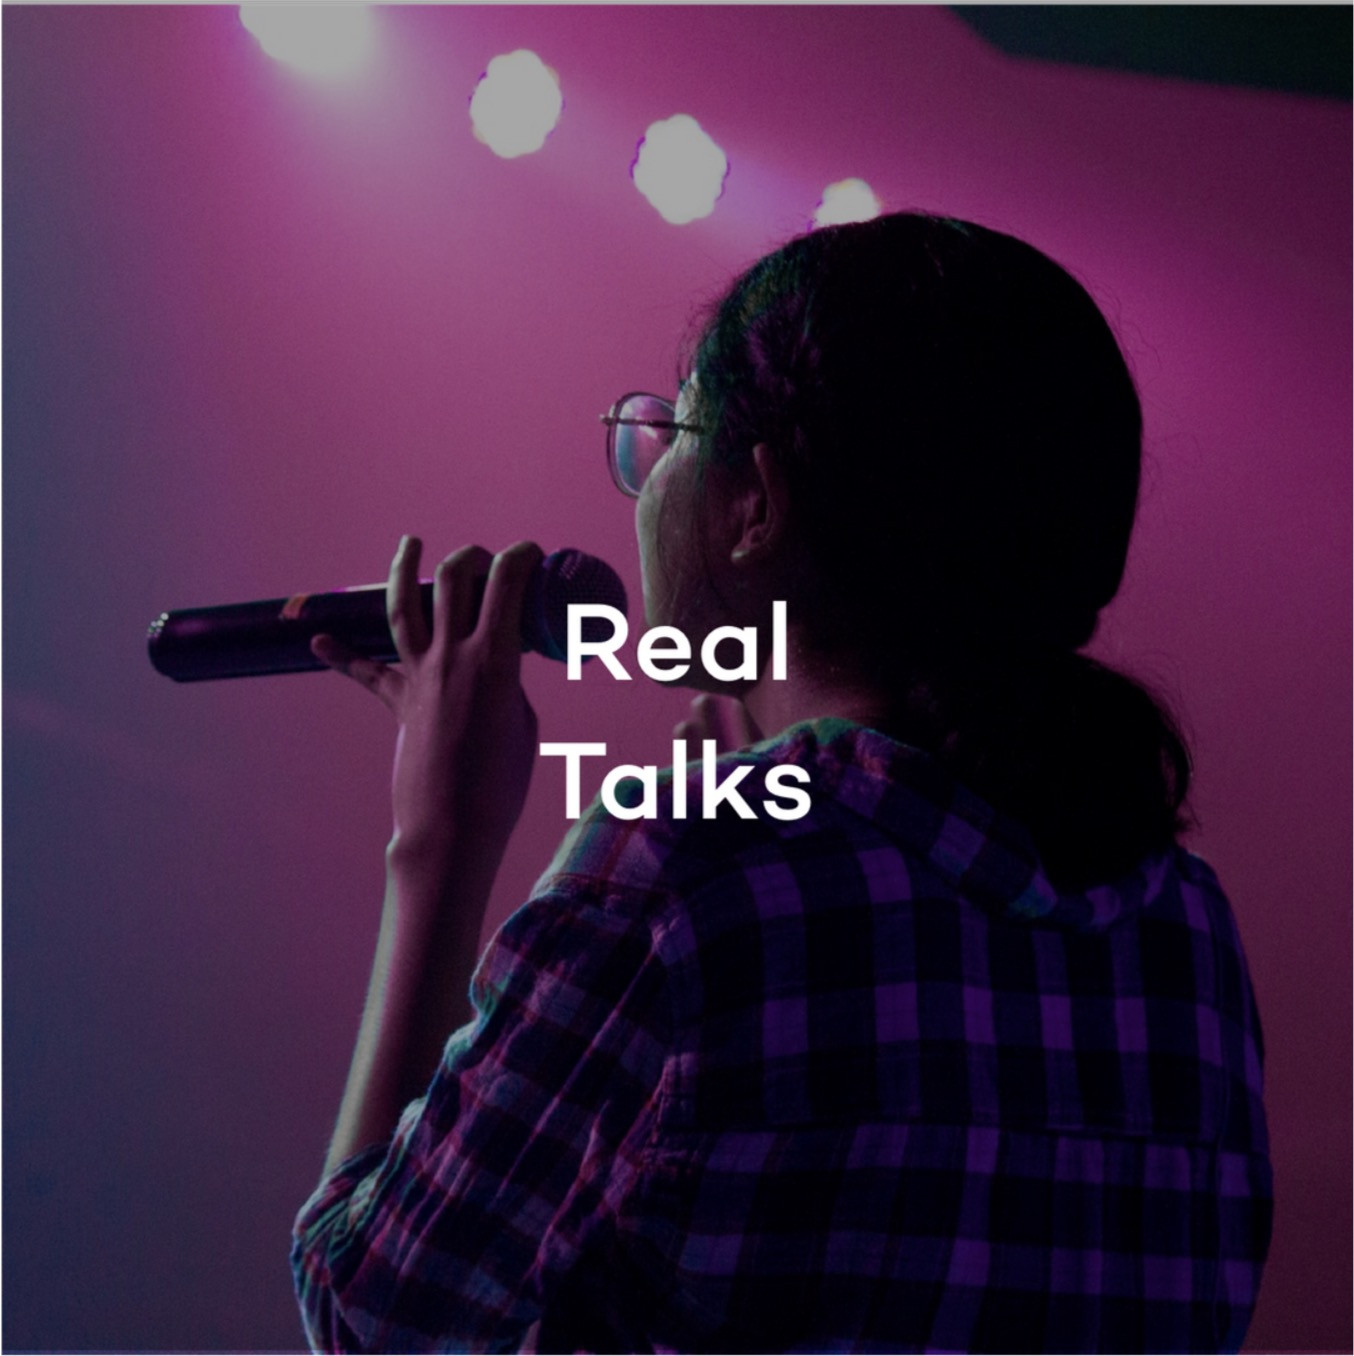 Real Talks  to tell your story with authenticity, while overcoming your fears and sharing life-lessons